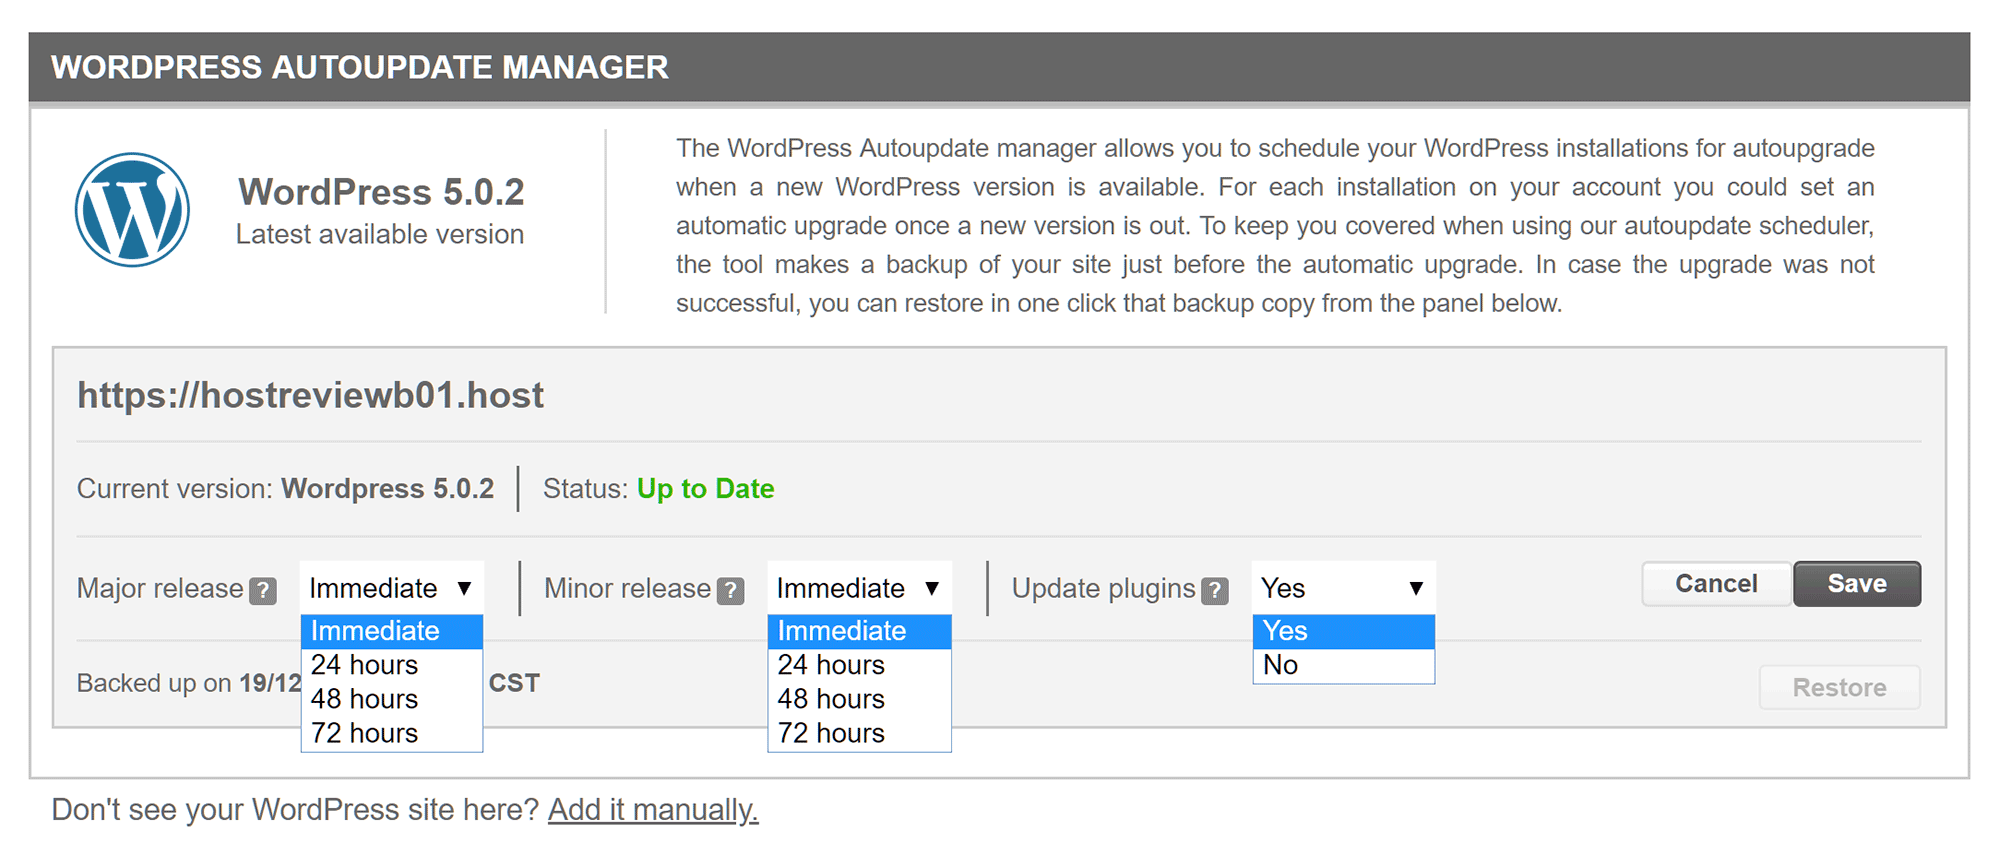 WordPress Auto update Manager